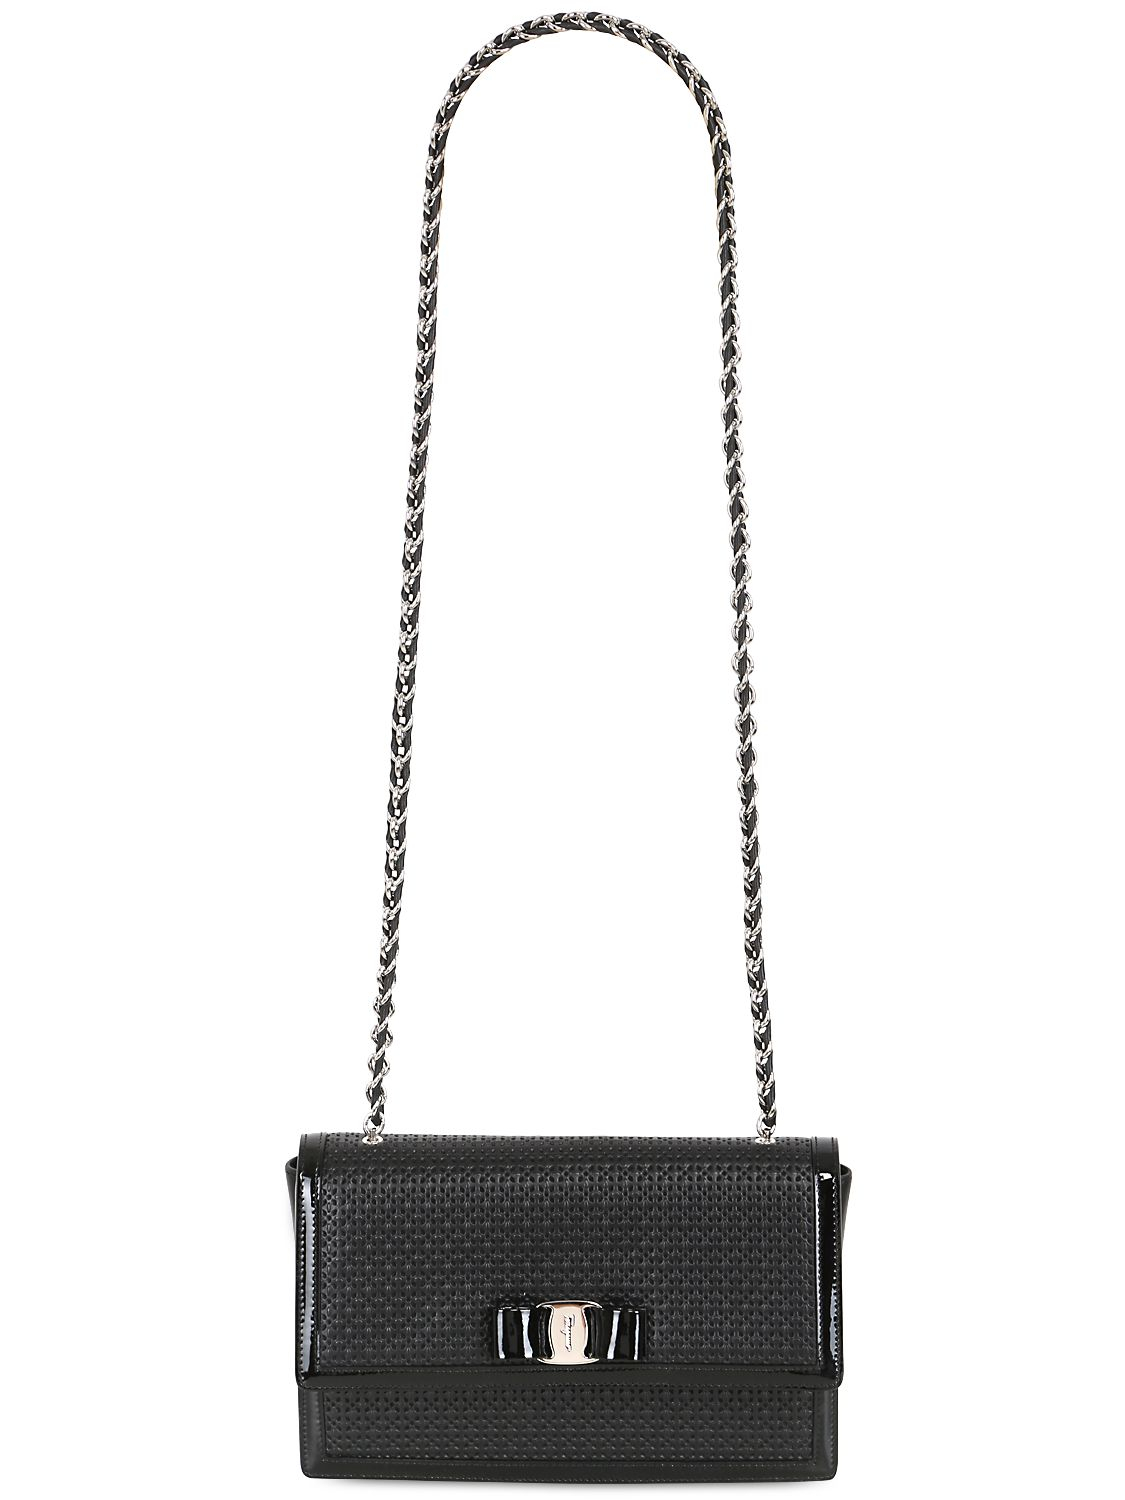 f490ab78e903 Ferragamo Medium Ginny Laser Cut Leather Bag in Black - Lyst